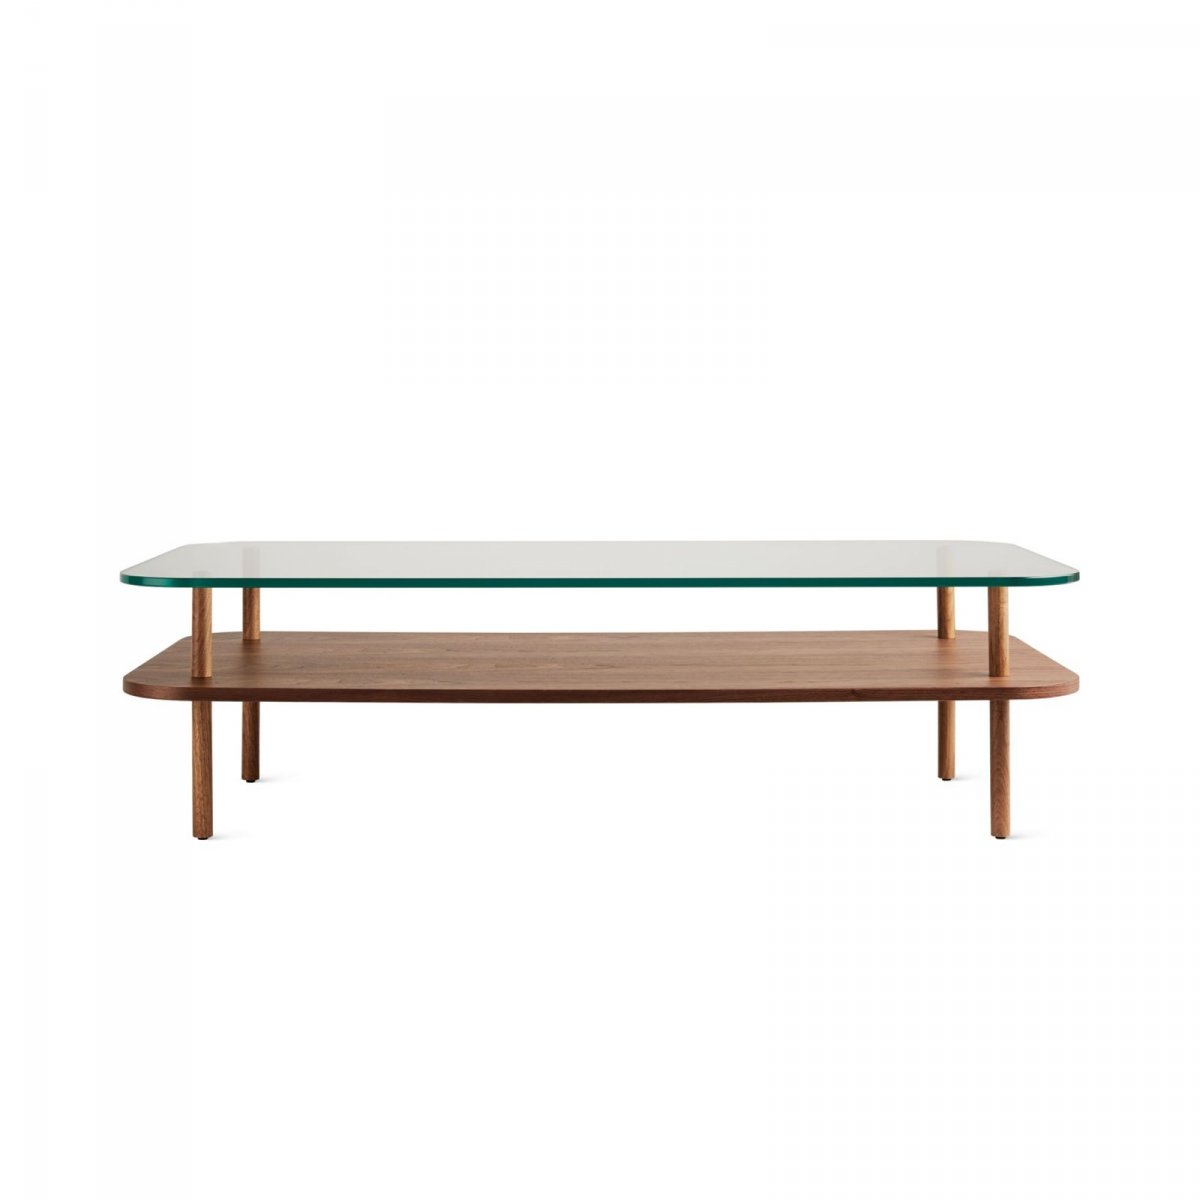 Unison Rectangular Coffee Table, walnut.